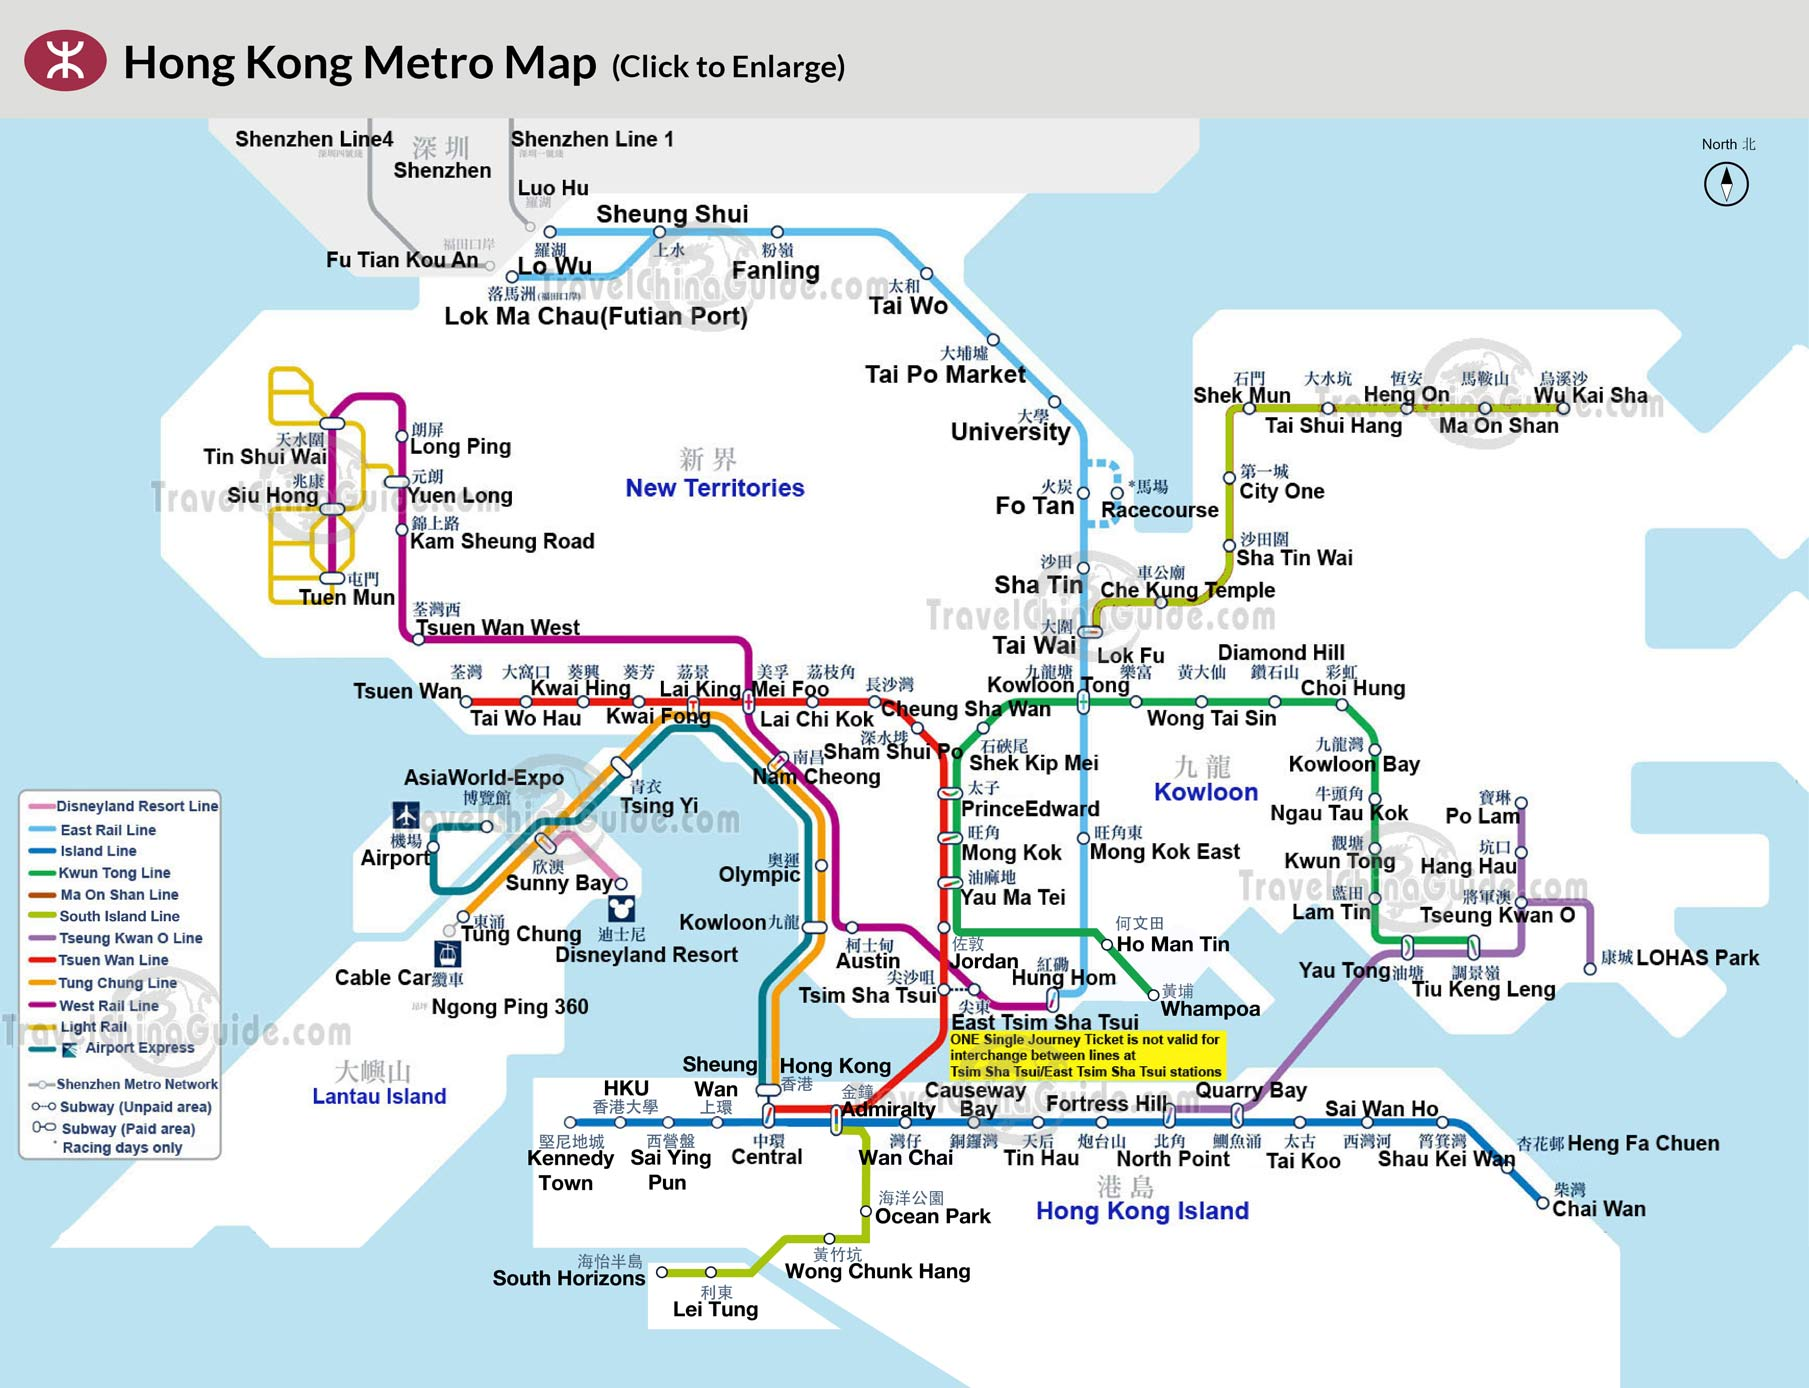 Mtr Hong Kong Map metro map hong kong mtr hong kong map   Living + Nomads – Travel